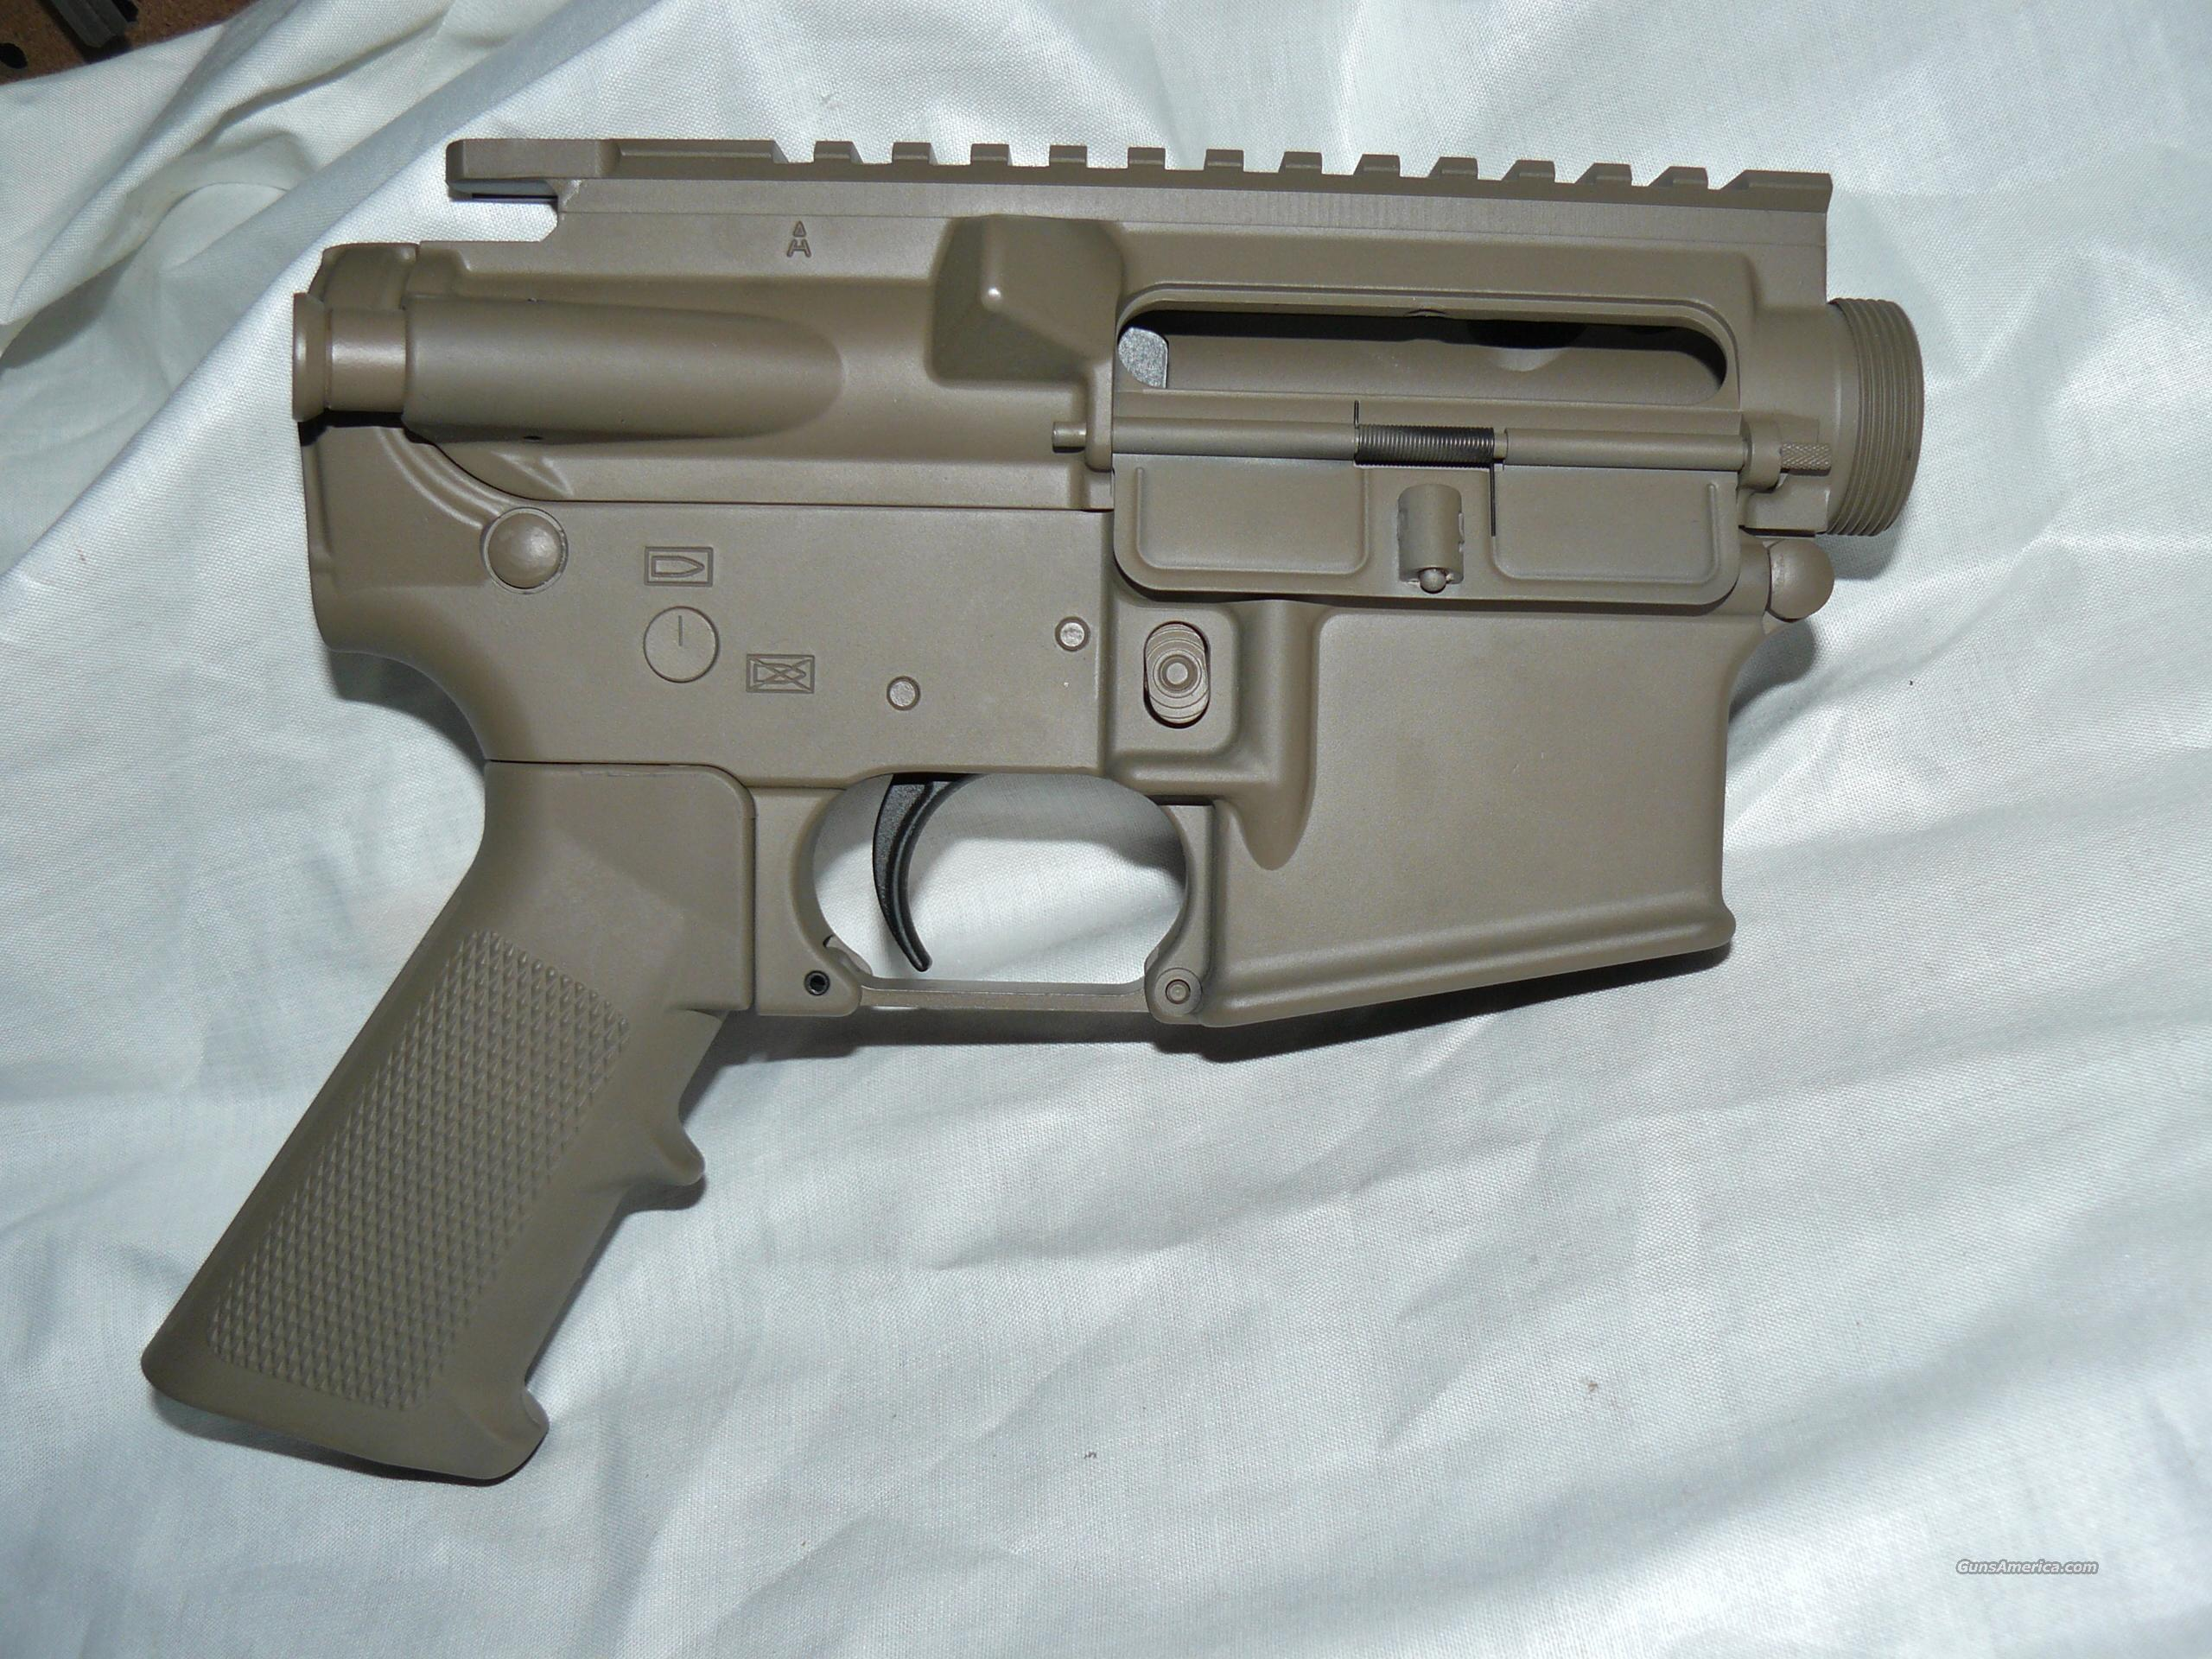 PSA AR15 MATCHED UPPER/LOWER CERAKOTE FDE w/LPK FREE SHIPPING  Guns > Rifles > AR-15 Rifles - Small Manufacturers > Lower Only